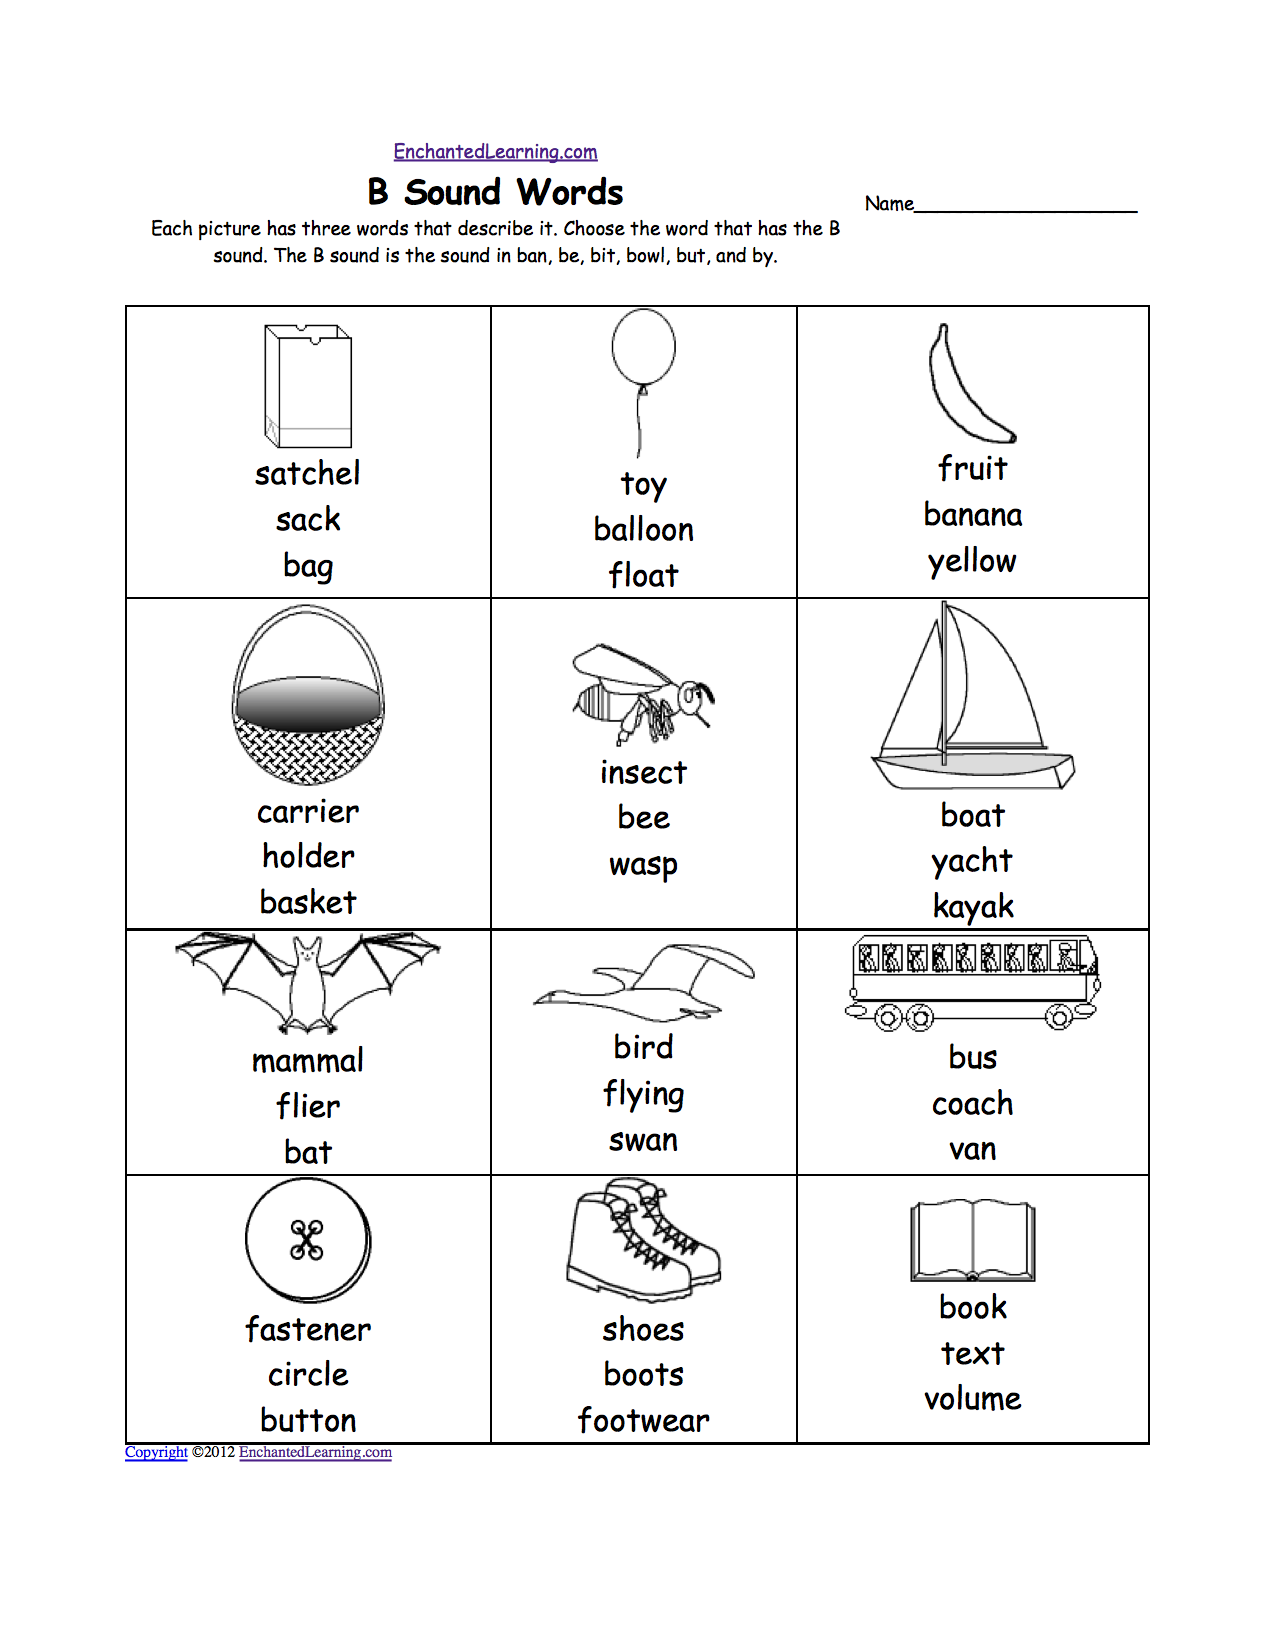 Weirdmailus  Gorgeous Phonics Worksheets Multiple Choice Worksheets To Print  With Exquisite Quotbquot Sound Phonics Worksheet Multiple Choice Each Picture Has Three Words That Describe It Choose The Word That Has A Quotbquot Sound The Quotbquot Sound Is The Sound  With Cool Commercial Electrical Load Calculation Worksheet Also Matter Worksheet In Addition Adding Fraction Worksheets And Cell Worksheets As Well As Common Core Th Grade Math Worksheets Additionally Solving Quadratic Inequalities Worksheet From Enchantedlearningcom With Weirdmailus  Exquisite Phonics Worksheets Multiple Choice Worksheets To Print  With Cool Quotbquot Sound Phonics Worksheet Multiple Choice Each Picture Has Three Words That Describe It Choose The Word That Has A Quotbquot Sound The Quotbquot Sound Is The Sound  And Gorgeous Commercial Electrical Load Calculation Worksheet Also Matter Worksheet In Addition Adding Fraction Worksheets From Enchantedlearningcom